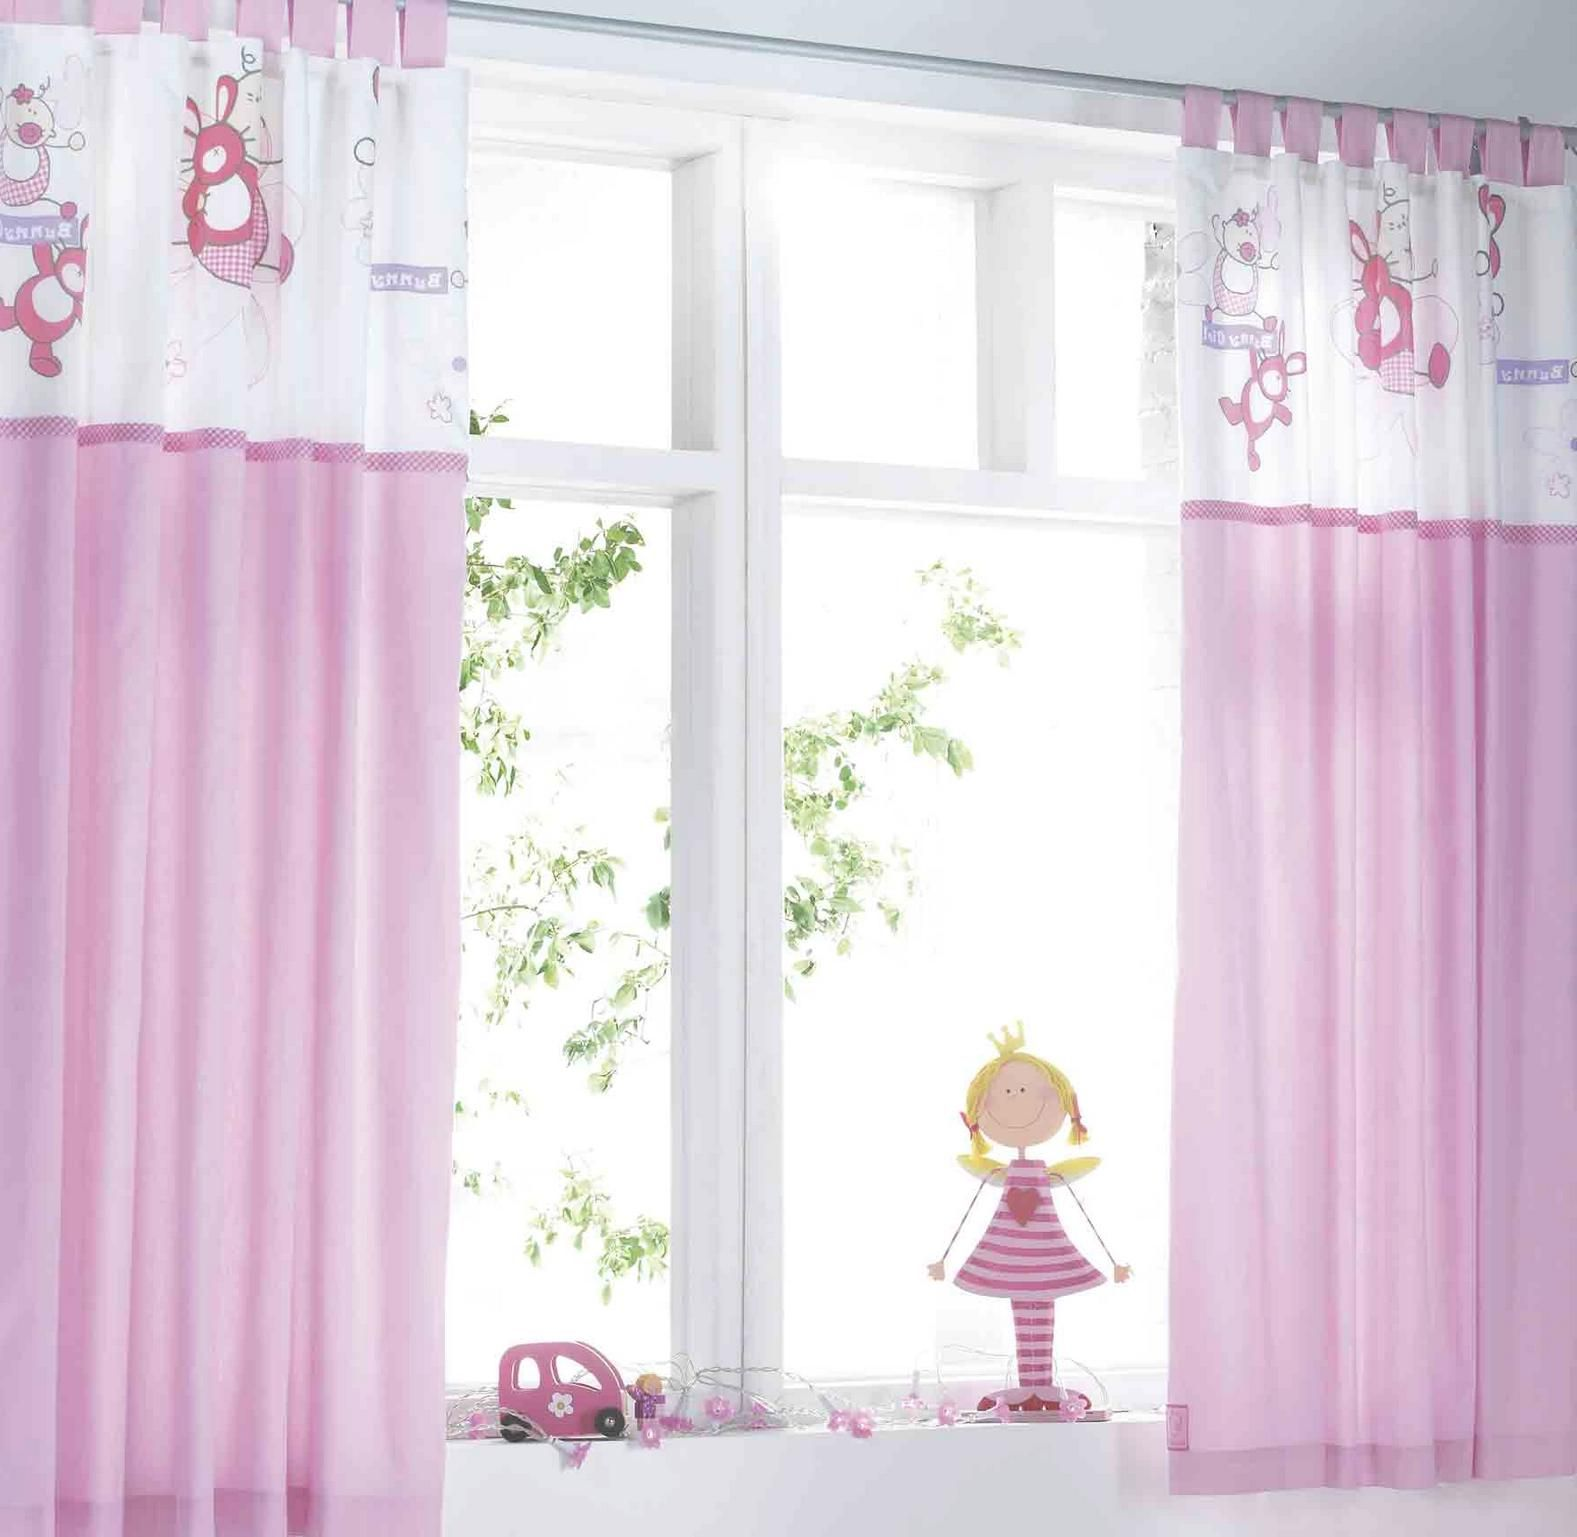 Kids Room Bee Motive Kids Room Curtains For Girl With White And